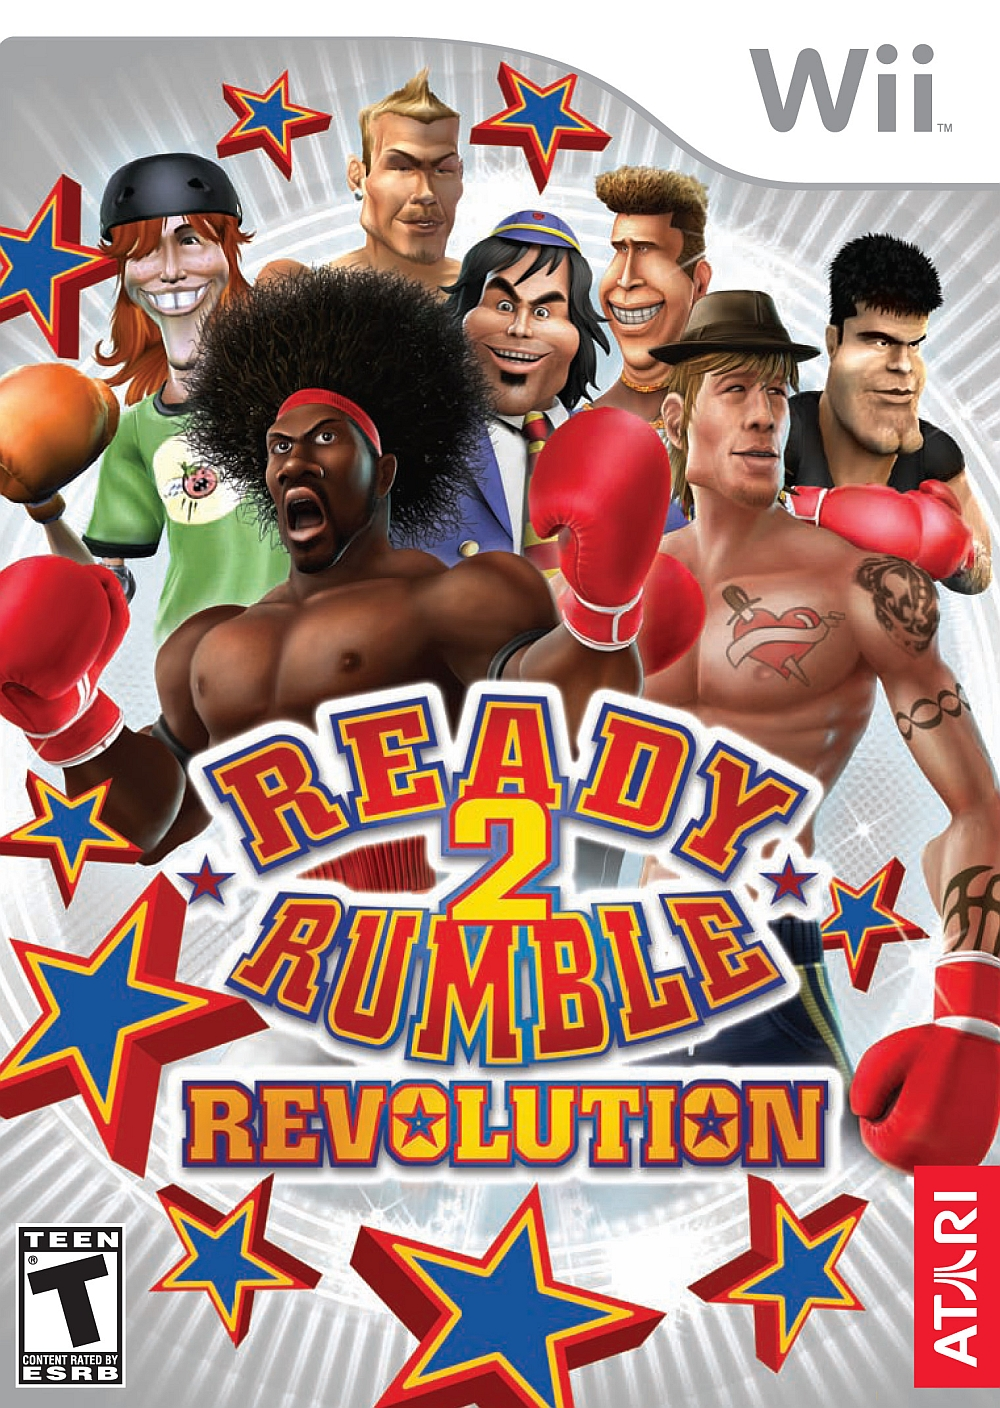 the wii nintendos video game revolution essay The power of the mario character can establish a nintendo game as an early genre king and help tap into a new market segment for great profit  of a modern video .